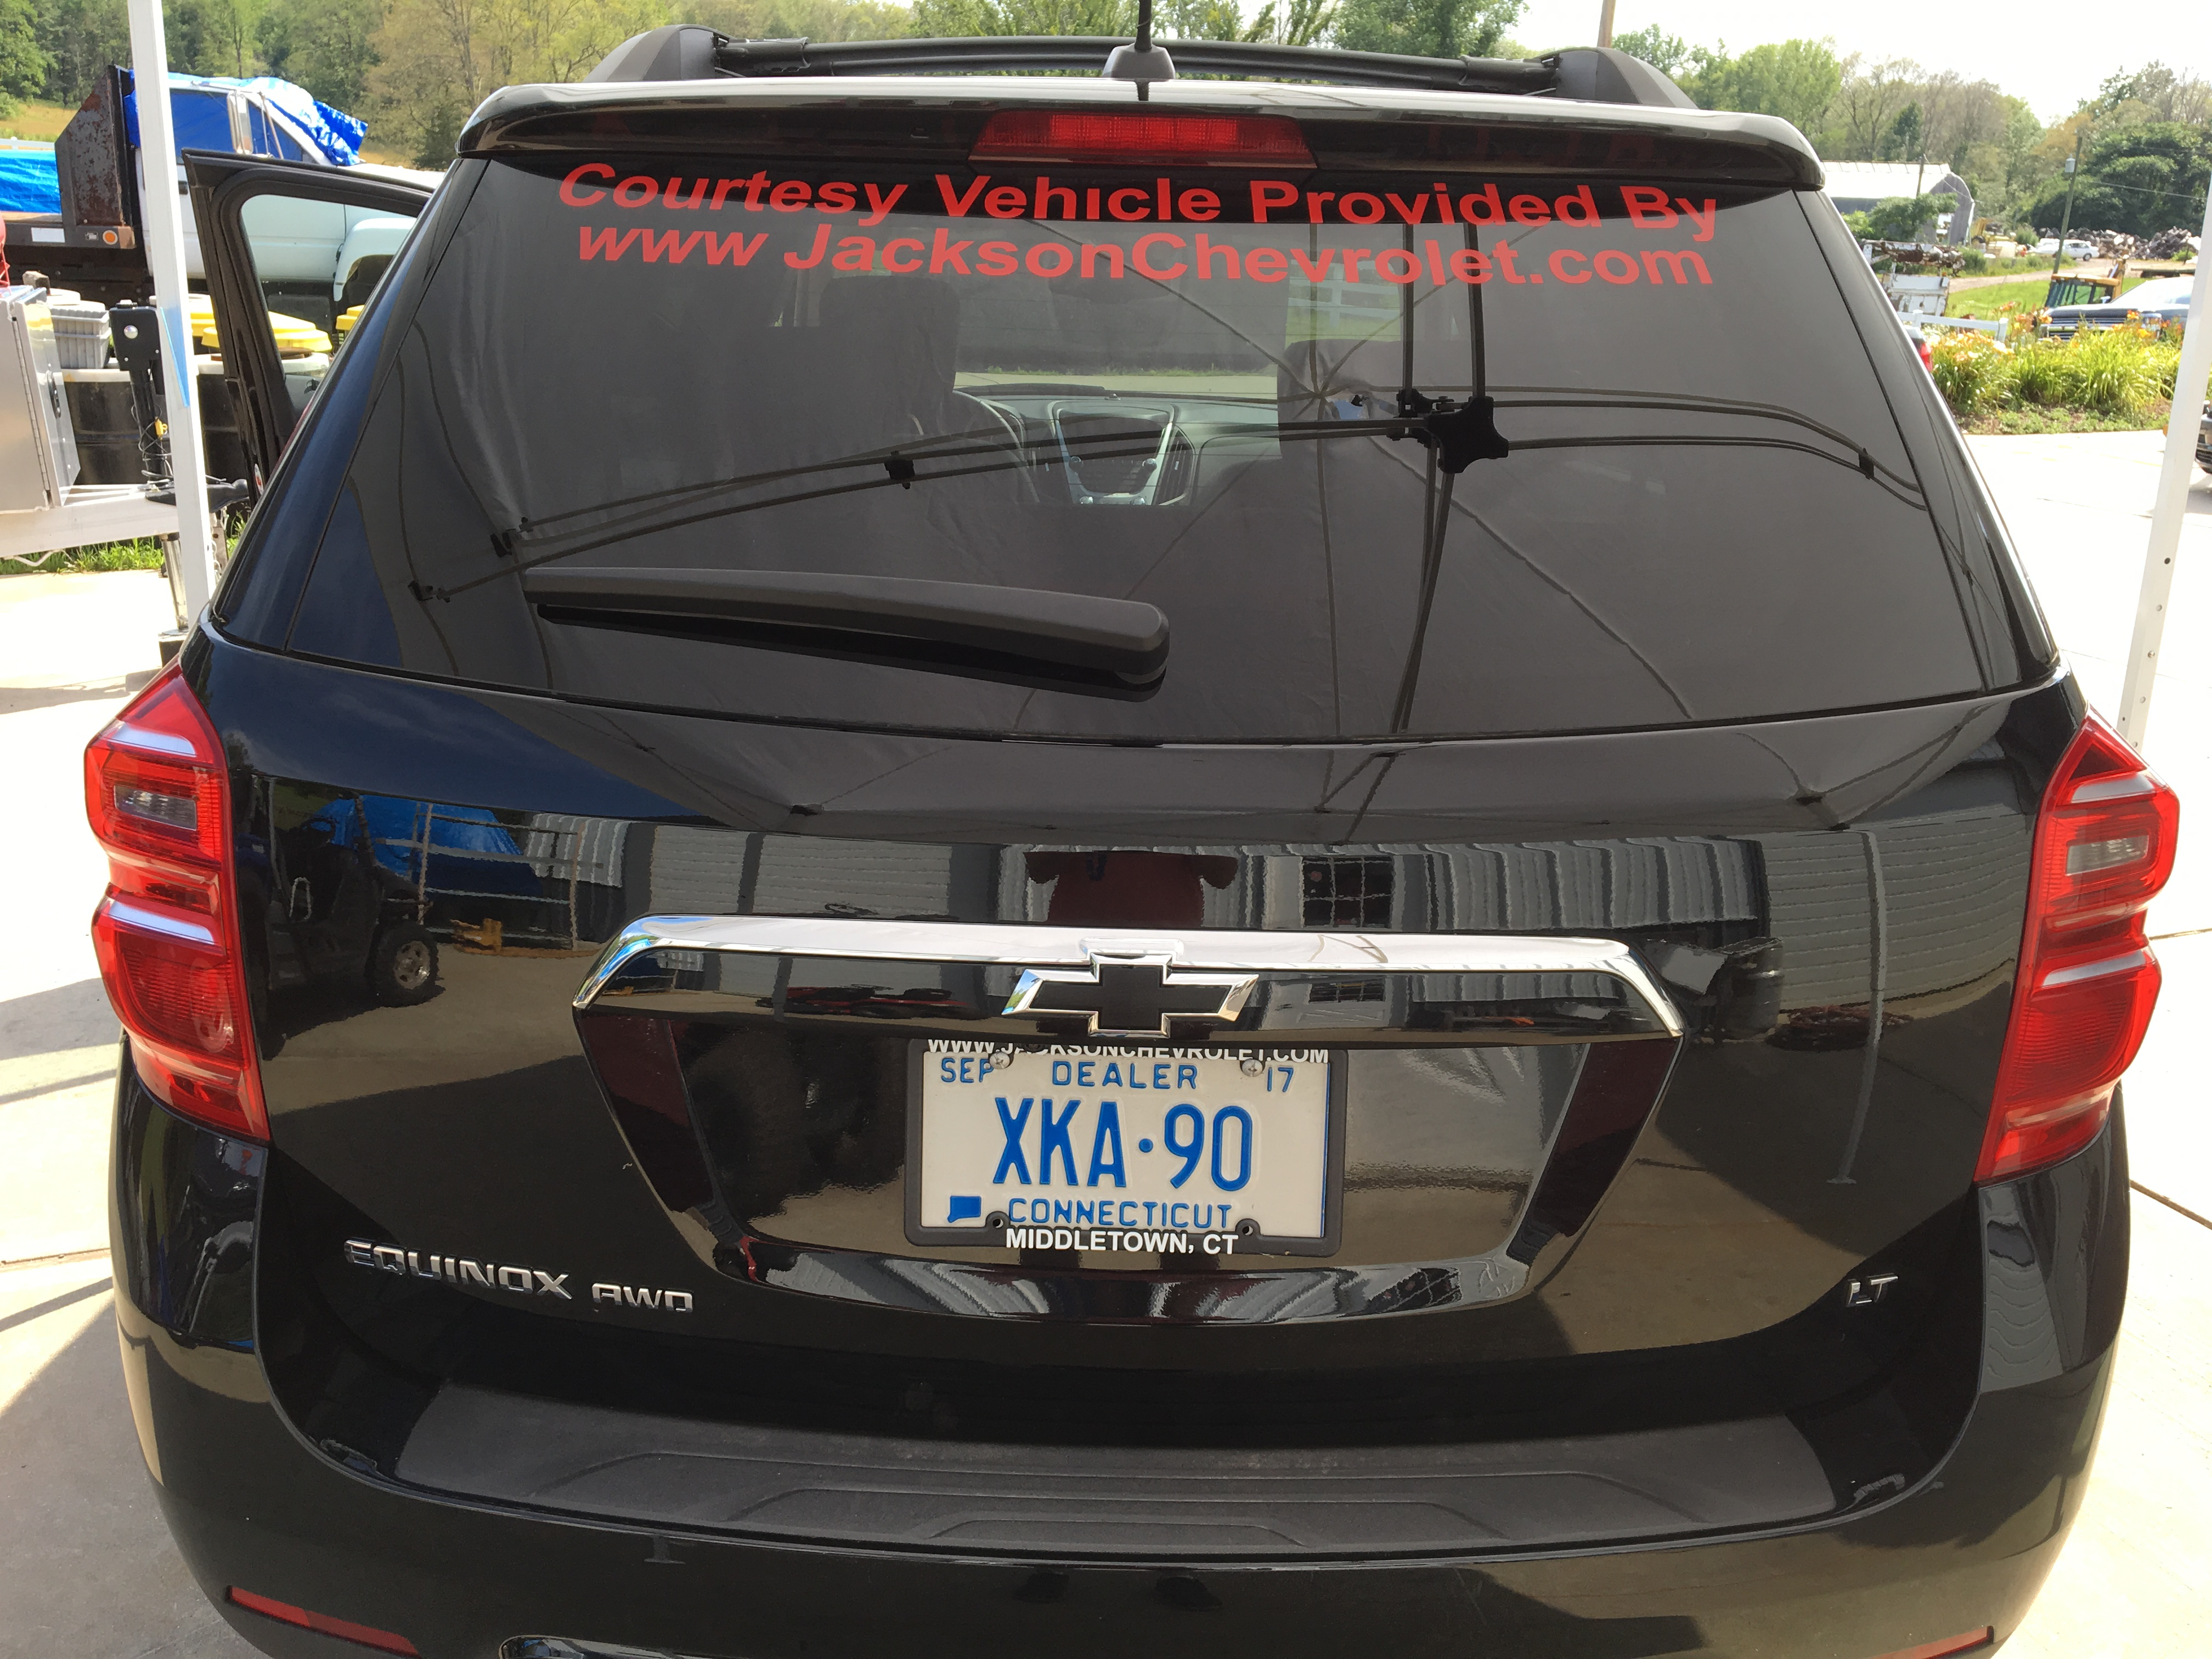 Jackson Chevrolet Decals